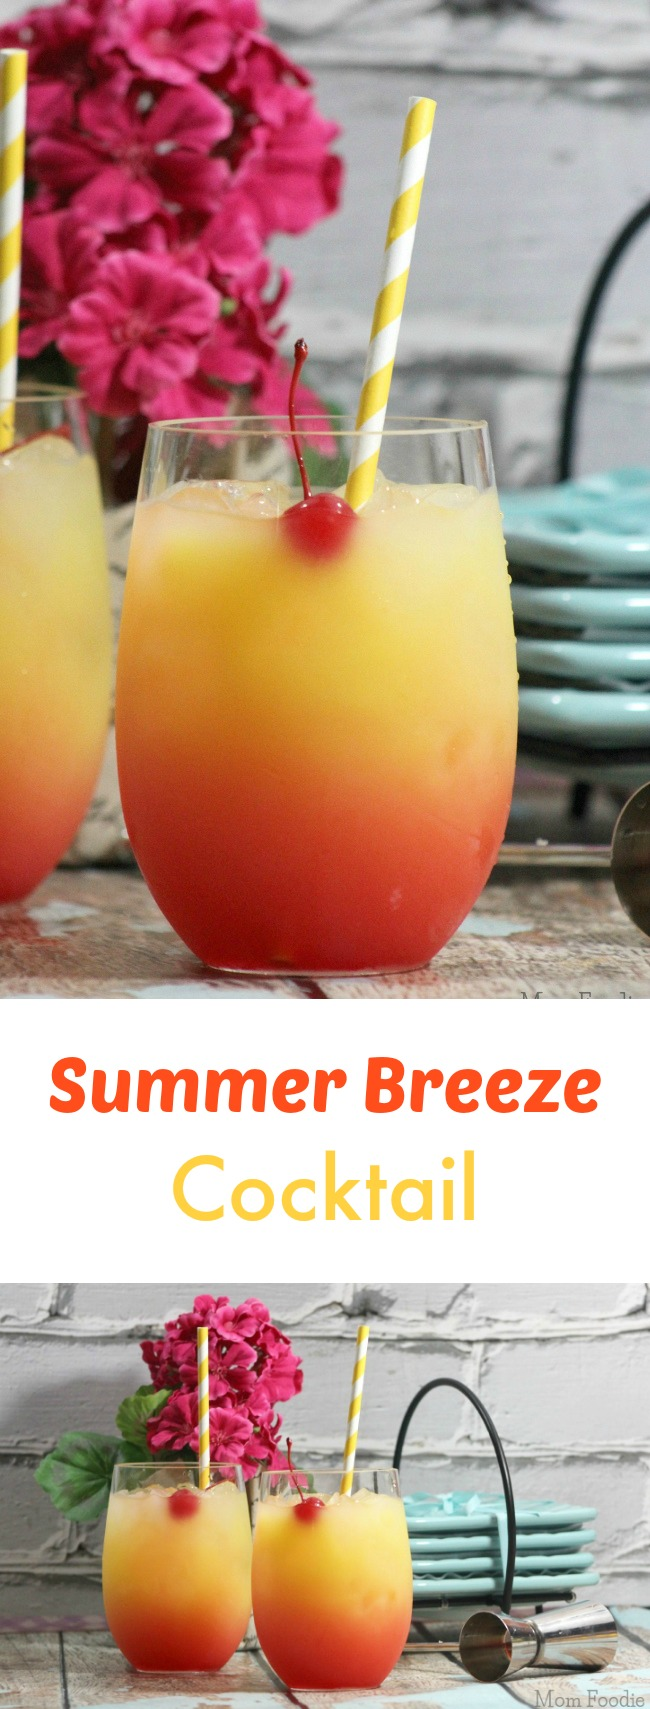 Summer Breeze Cocktail Recipe